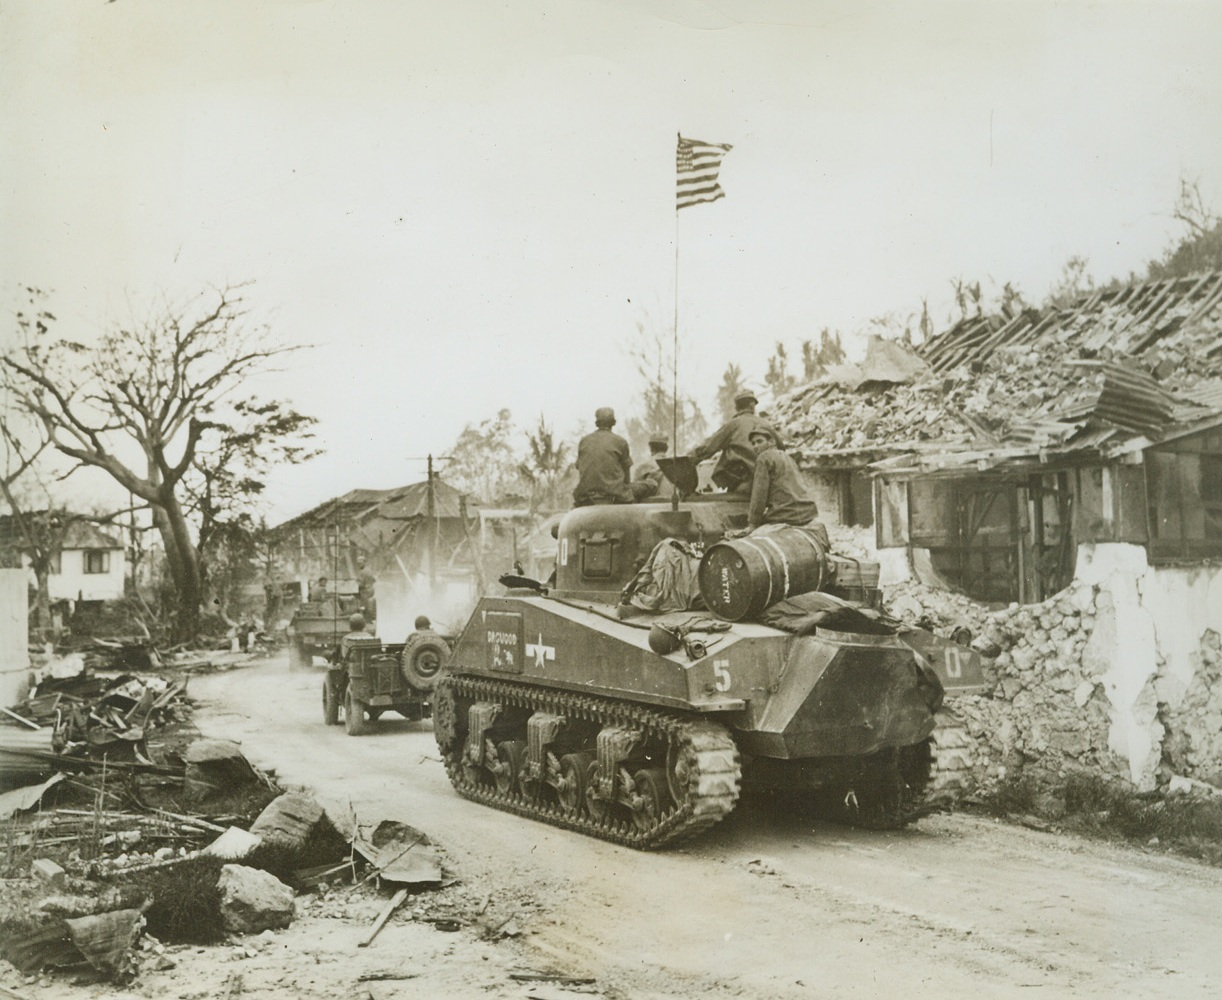 Old Glory Moves Up to Battle, 8/11/1944. GANA, GUAM – Moving through the war-shattered town of Agana, tanks and armored vehicles of the Third  U.S. Marine Division roll to the North on the hells of retreating Japs. They carry with them the American flag, to wave once again over the island that was seized by the Japs shortly after Pearl Harbor. Credit: ACME;